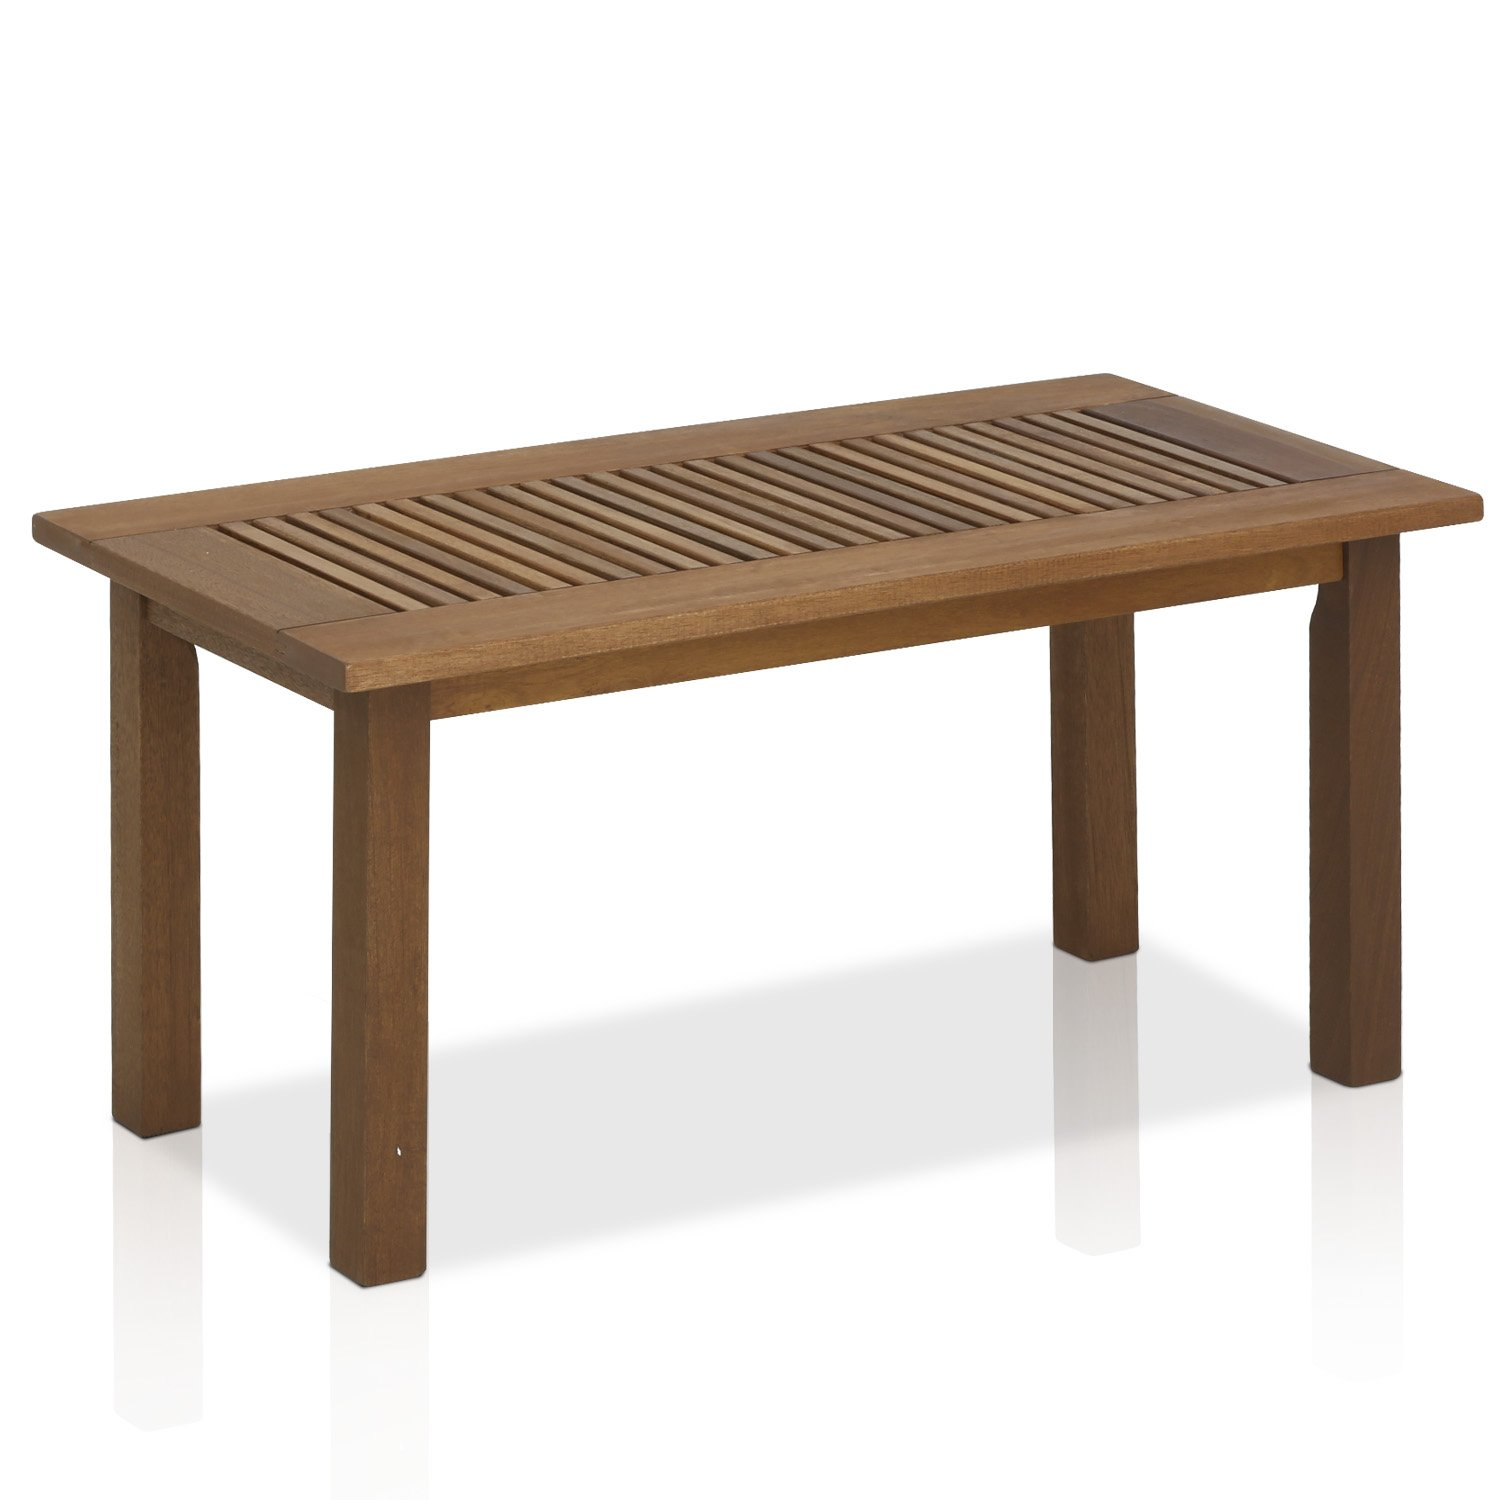 Amazon com furinno tioman hardwood outdoor coffee table in teak oil garden outdoor